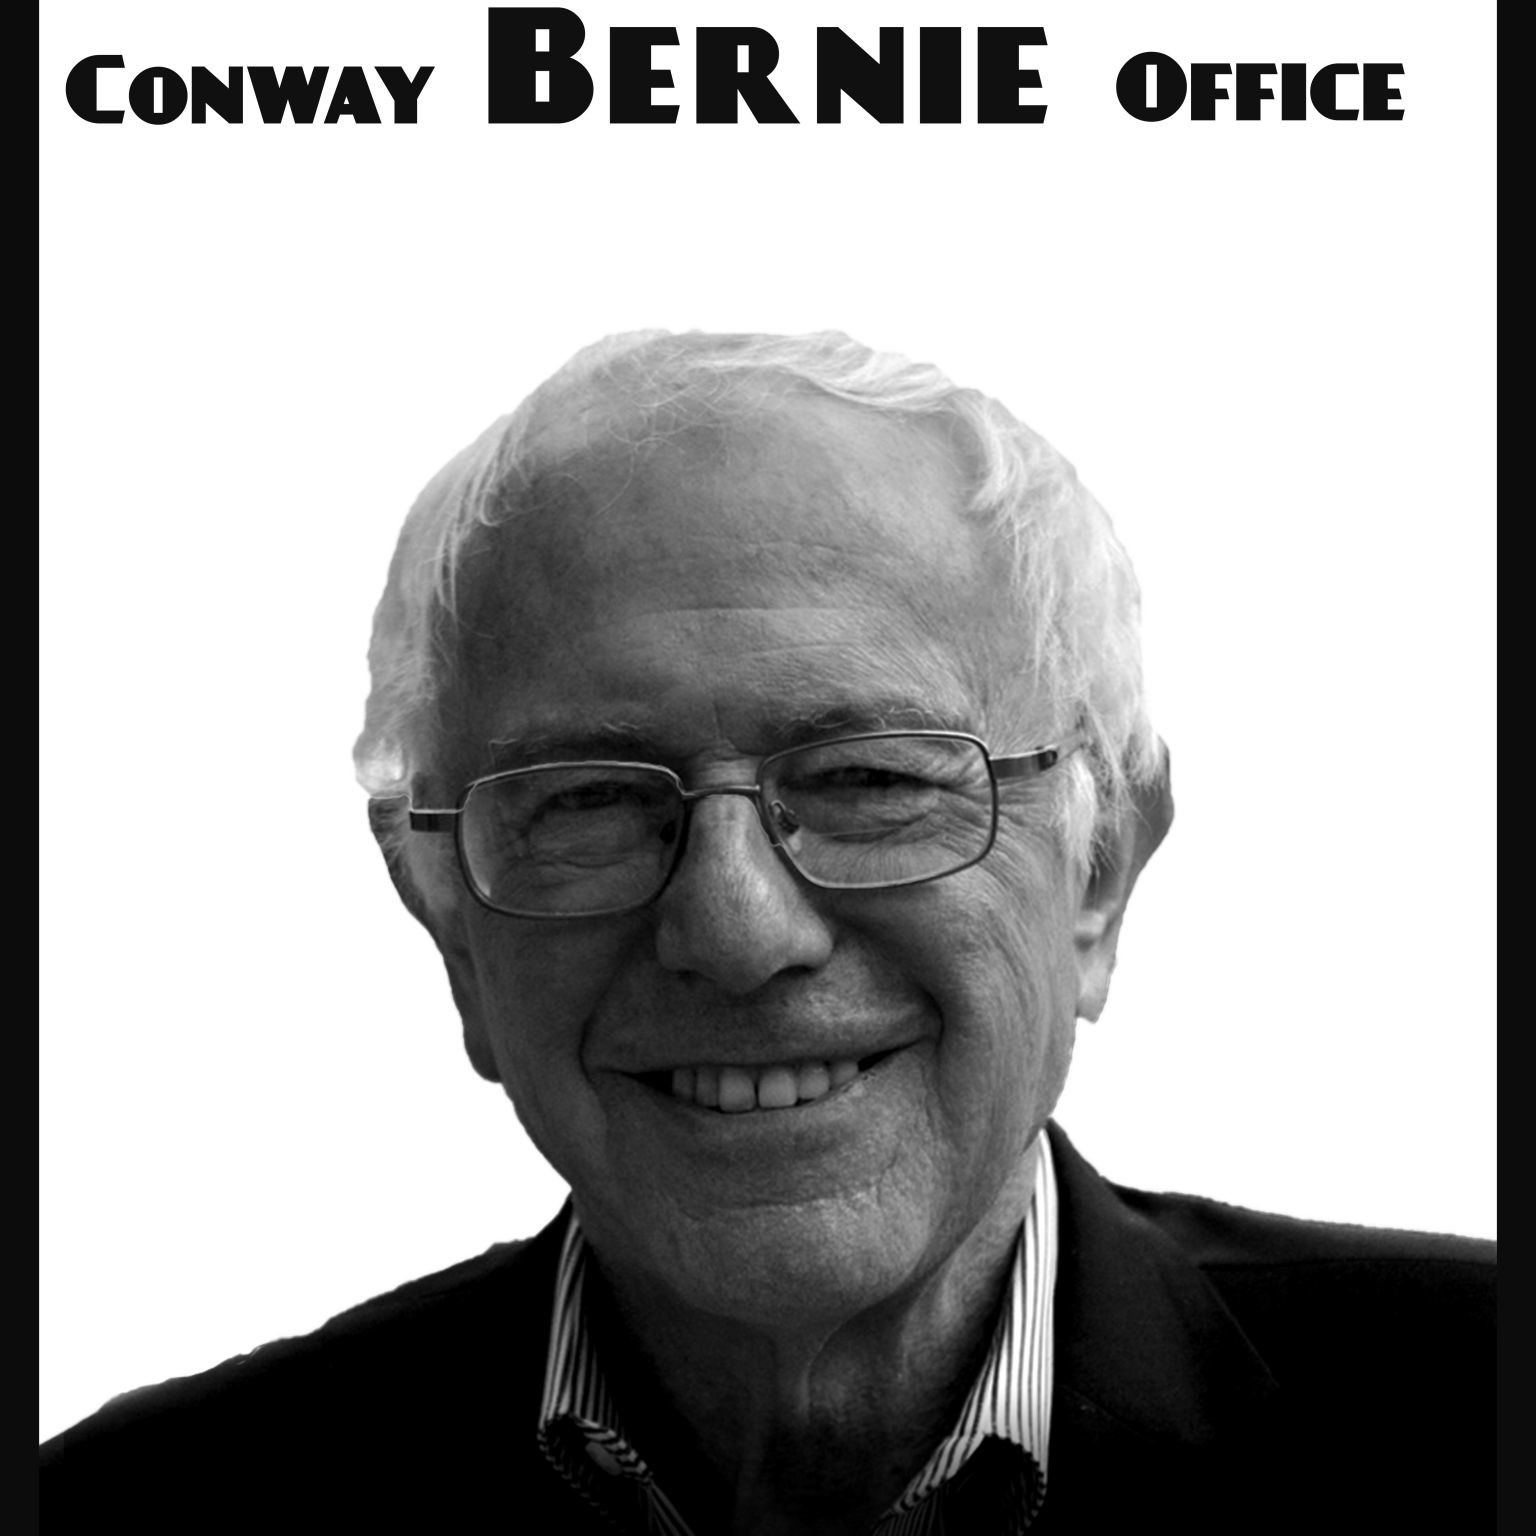 Bernie in Conway Poster V2